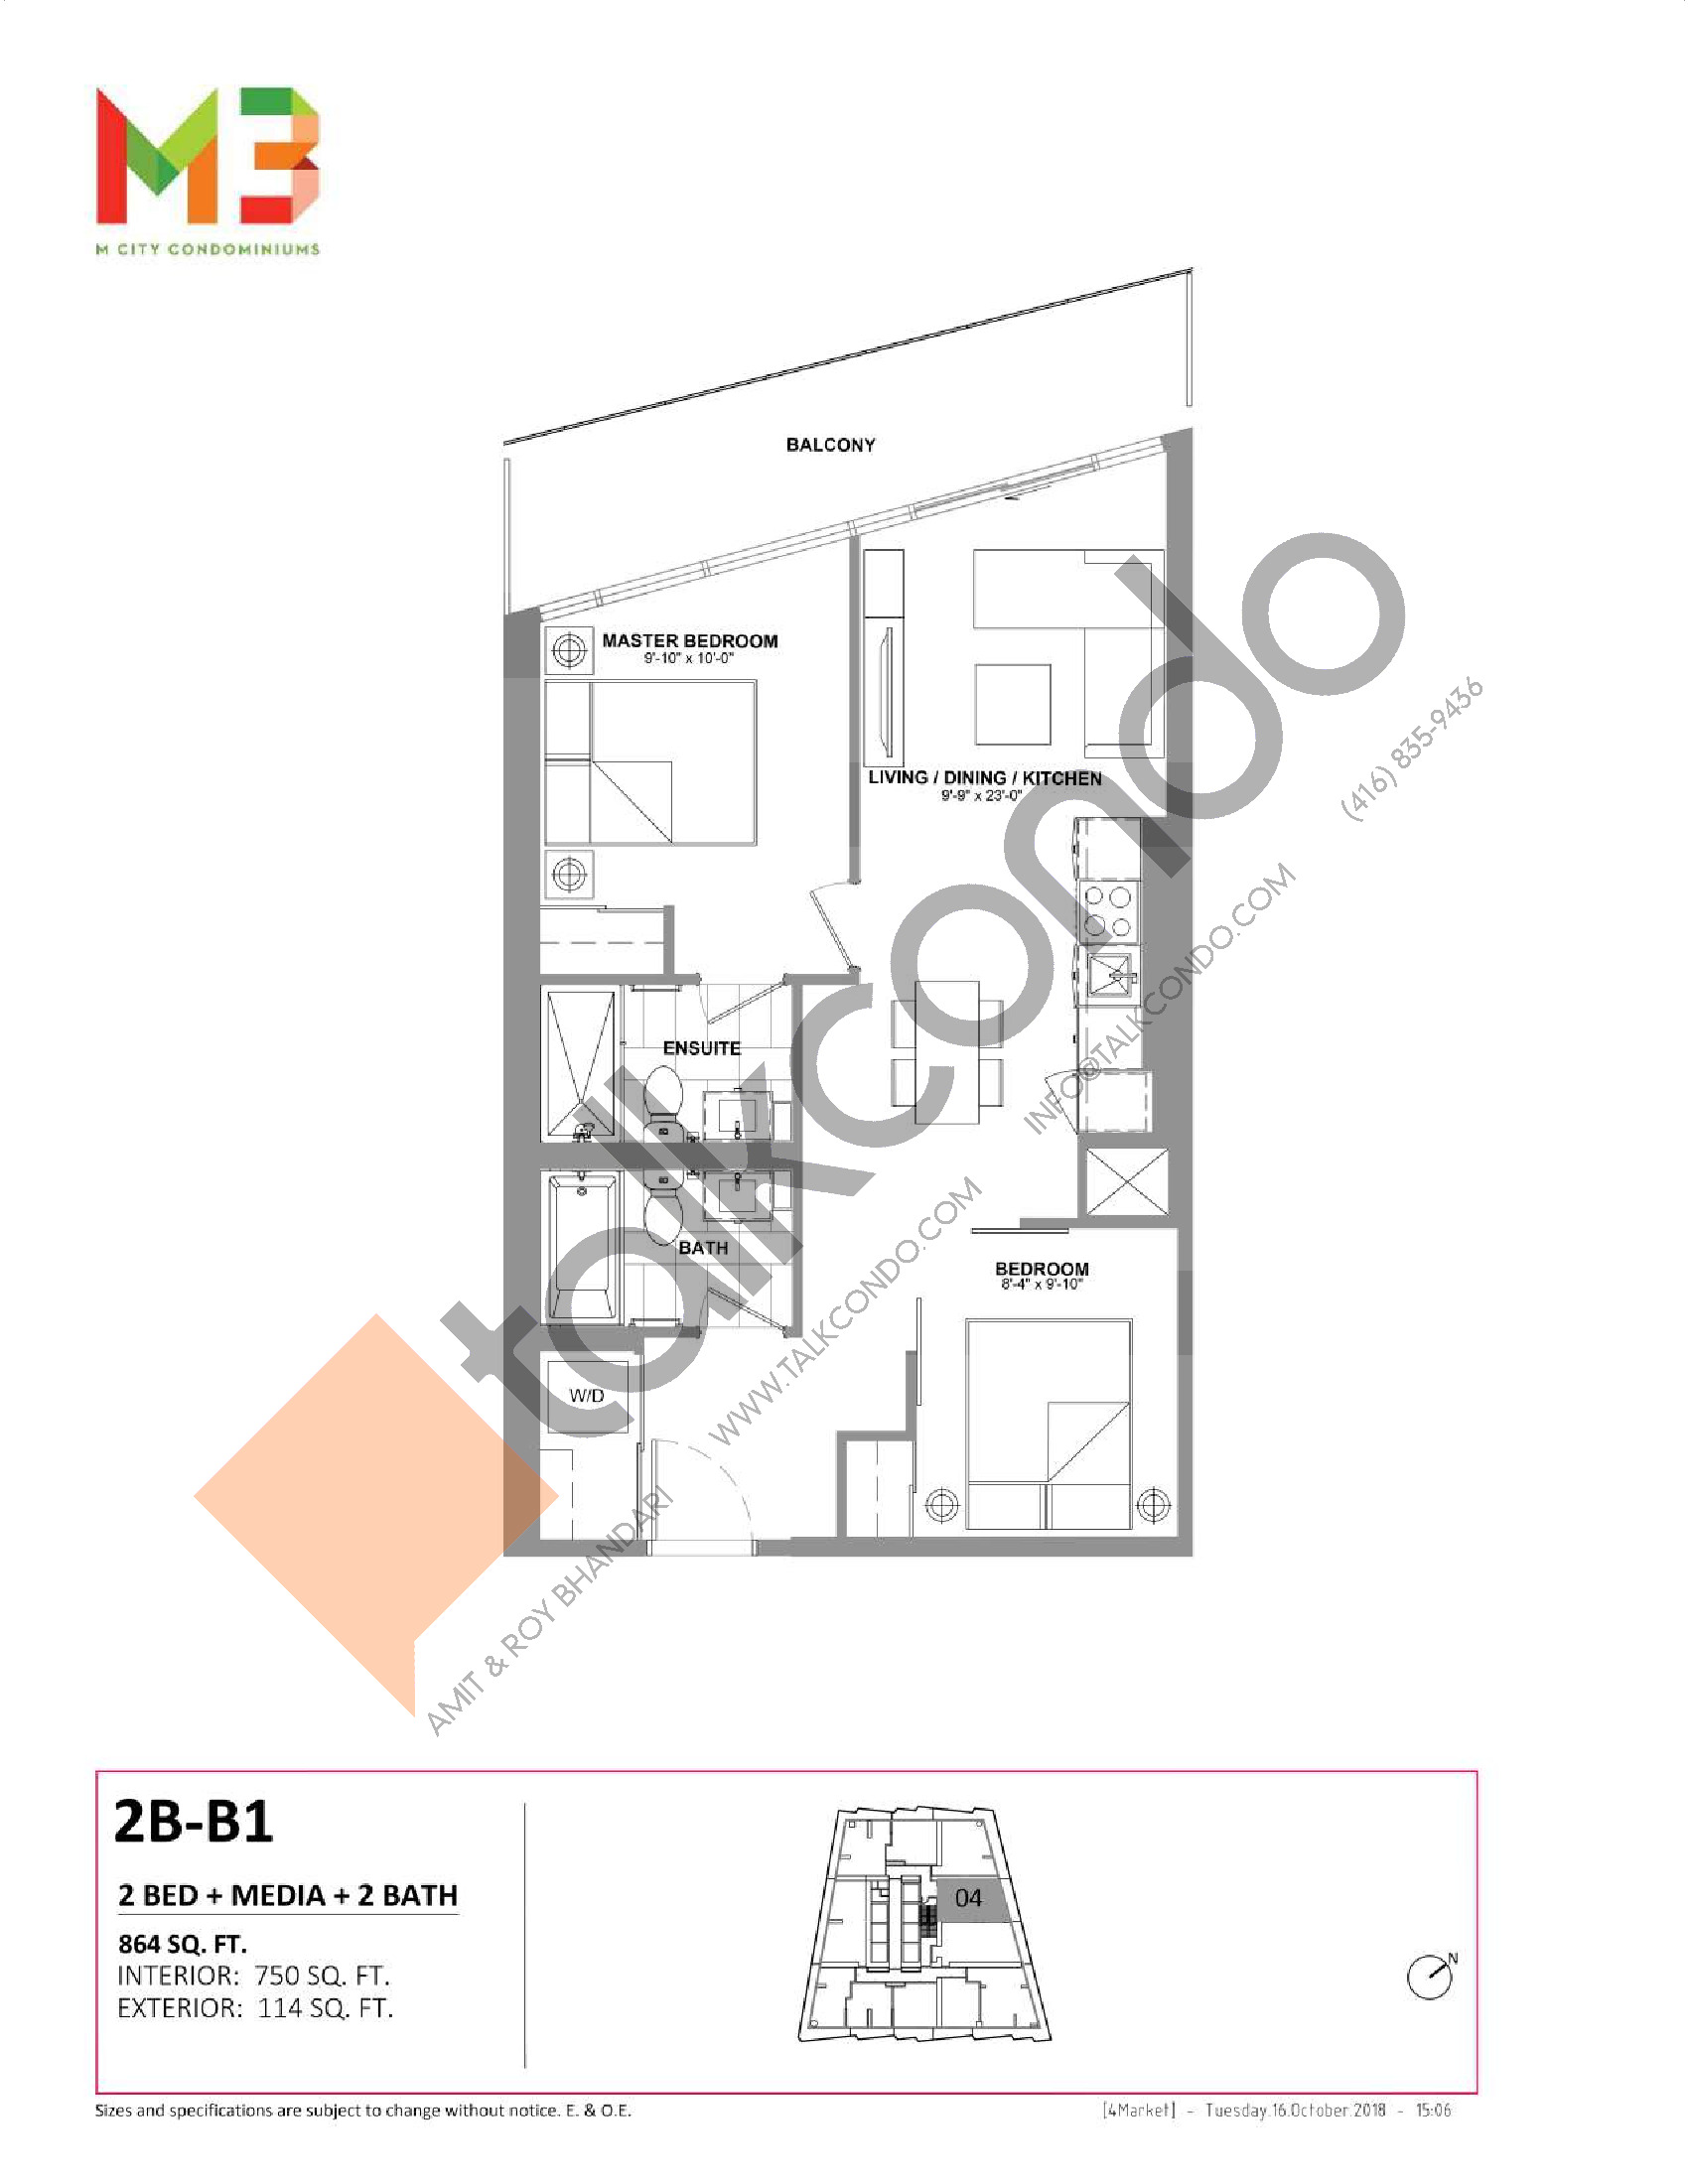 2B-B1 Floor Plan at M3 Condos - 750 sq.ft